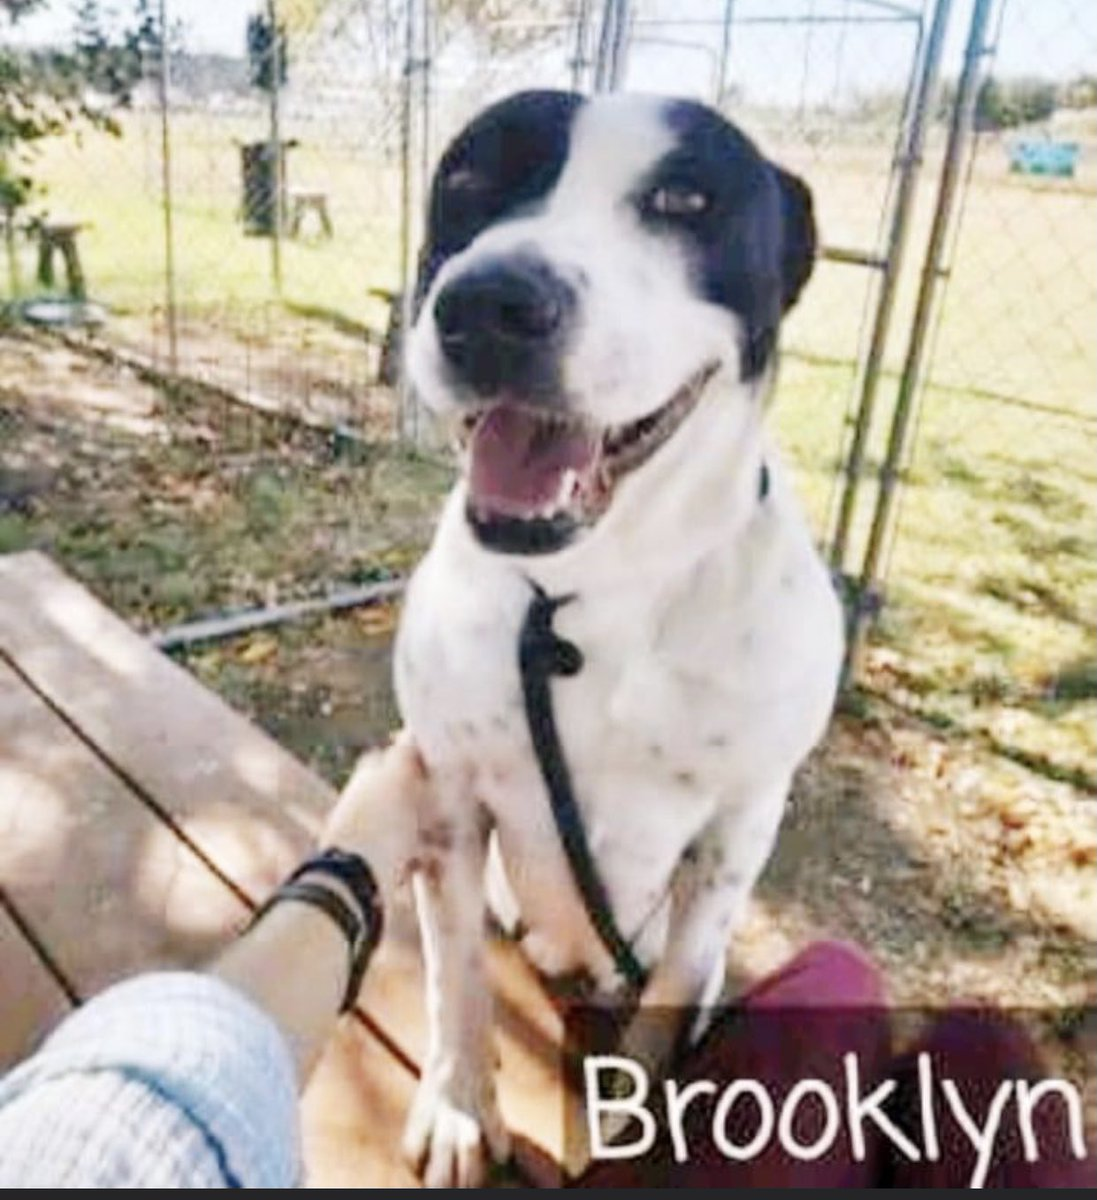 #TX #ABILENE 🆘OVER 4 MONTHS IN HER KENNEL Brooklyn 1yo sweet girl who loves human company but is Not so fond of dogs. She has been passed by & ignored & really needs a rescue to help her! Pls #PLEDGE #RESCUE #FOSTER LETS GET HER OUT OF HERE! #A45417210